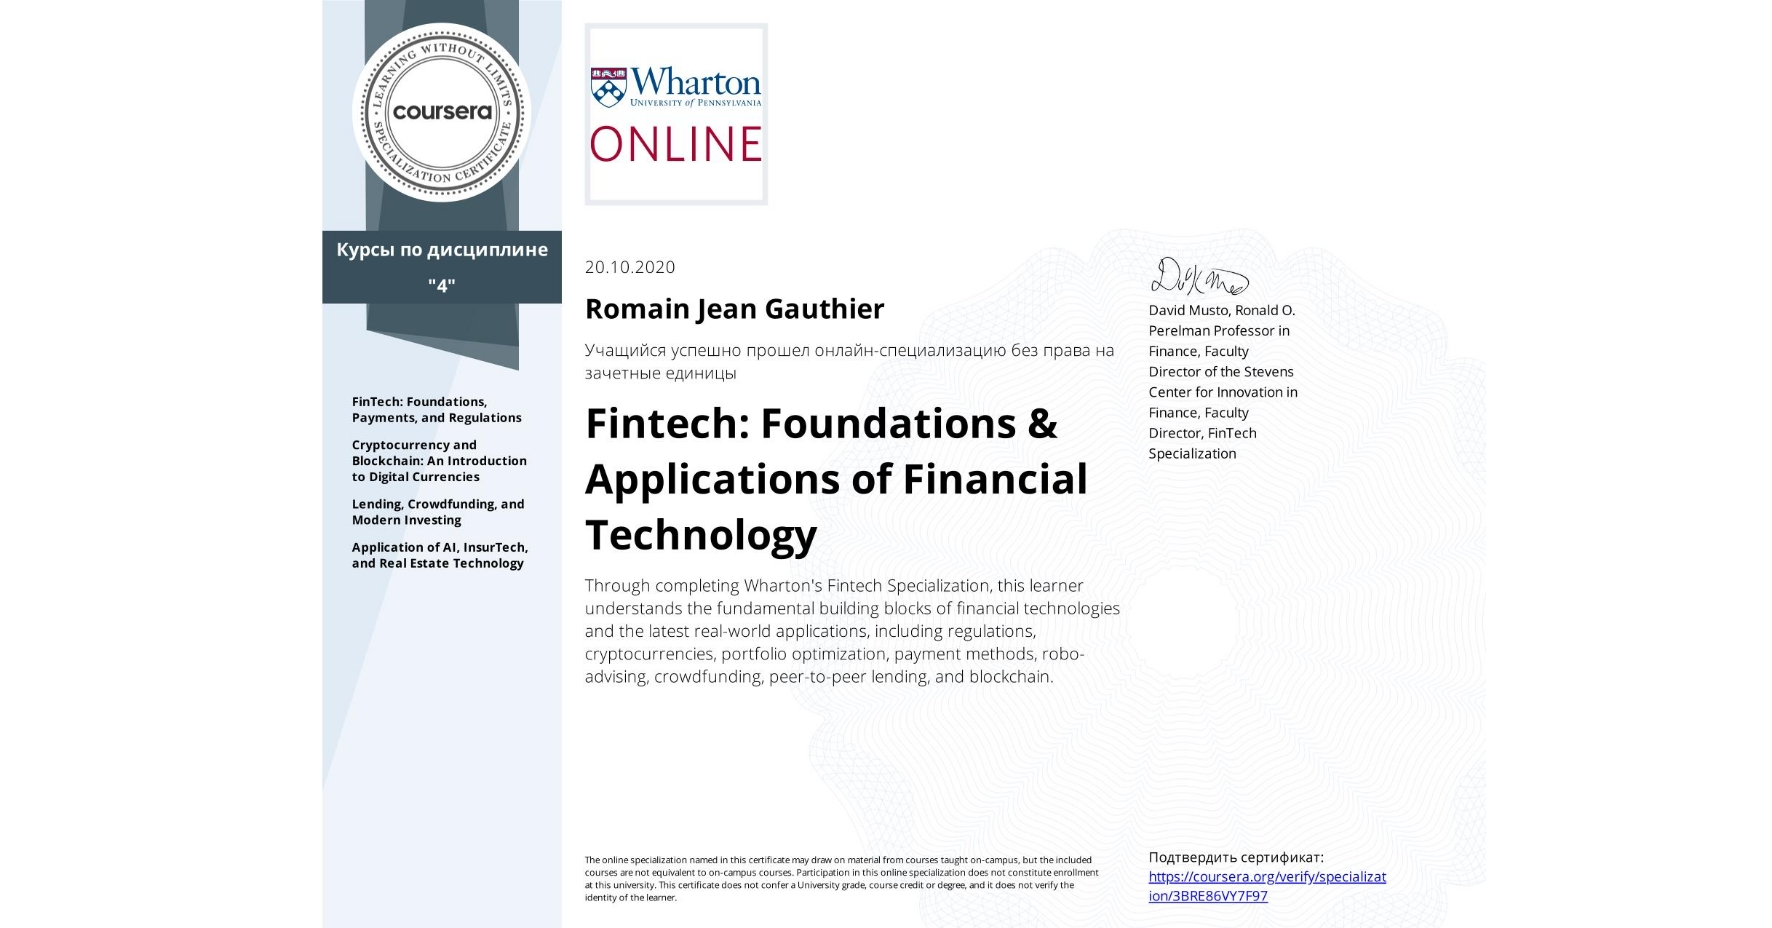 View certificate for Romain Jean  Gauthier, Fintech: Foundations & Applications of Financial Technology, offered through Coursera. Through completing Wharton's Fintech Specialization, this learner understands the fundamental building blocks of financial technologies and the latest real-world applications, including regulations, cryptocurrencies,  portfolio optimization, payment methods, robo-advising, crowdfunding, peer-to-peer lending, and blockchain.